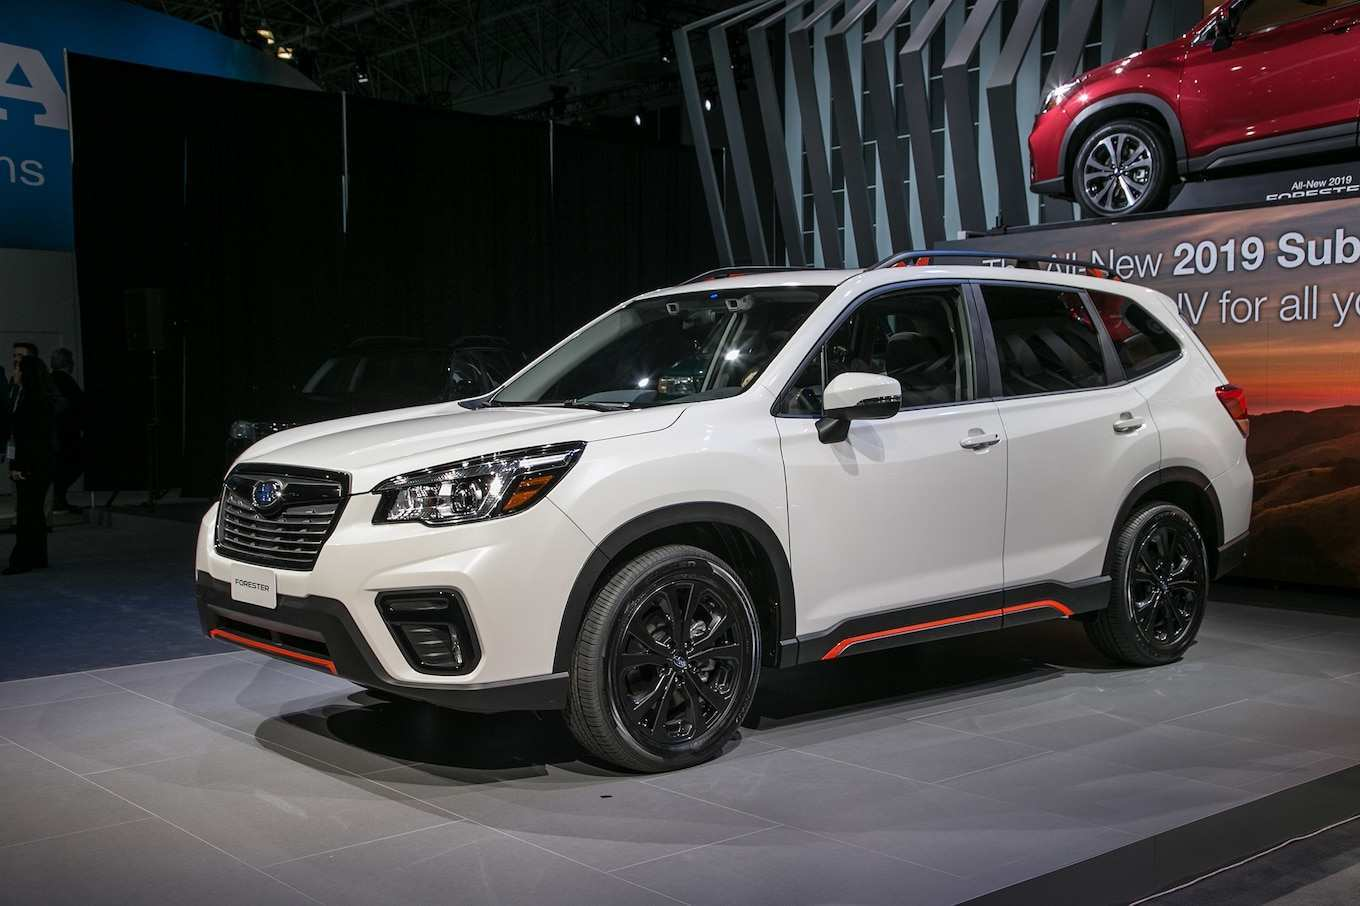 77 Best Review Subaru Forester 2019 Hybrid Pricing by Subaru Forester 2019 Hybrid